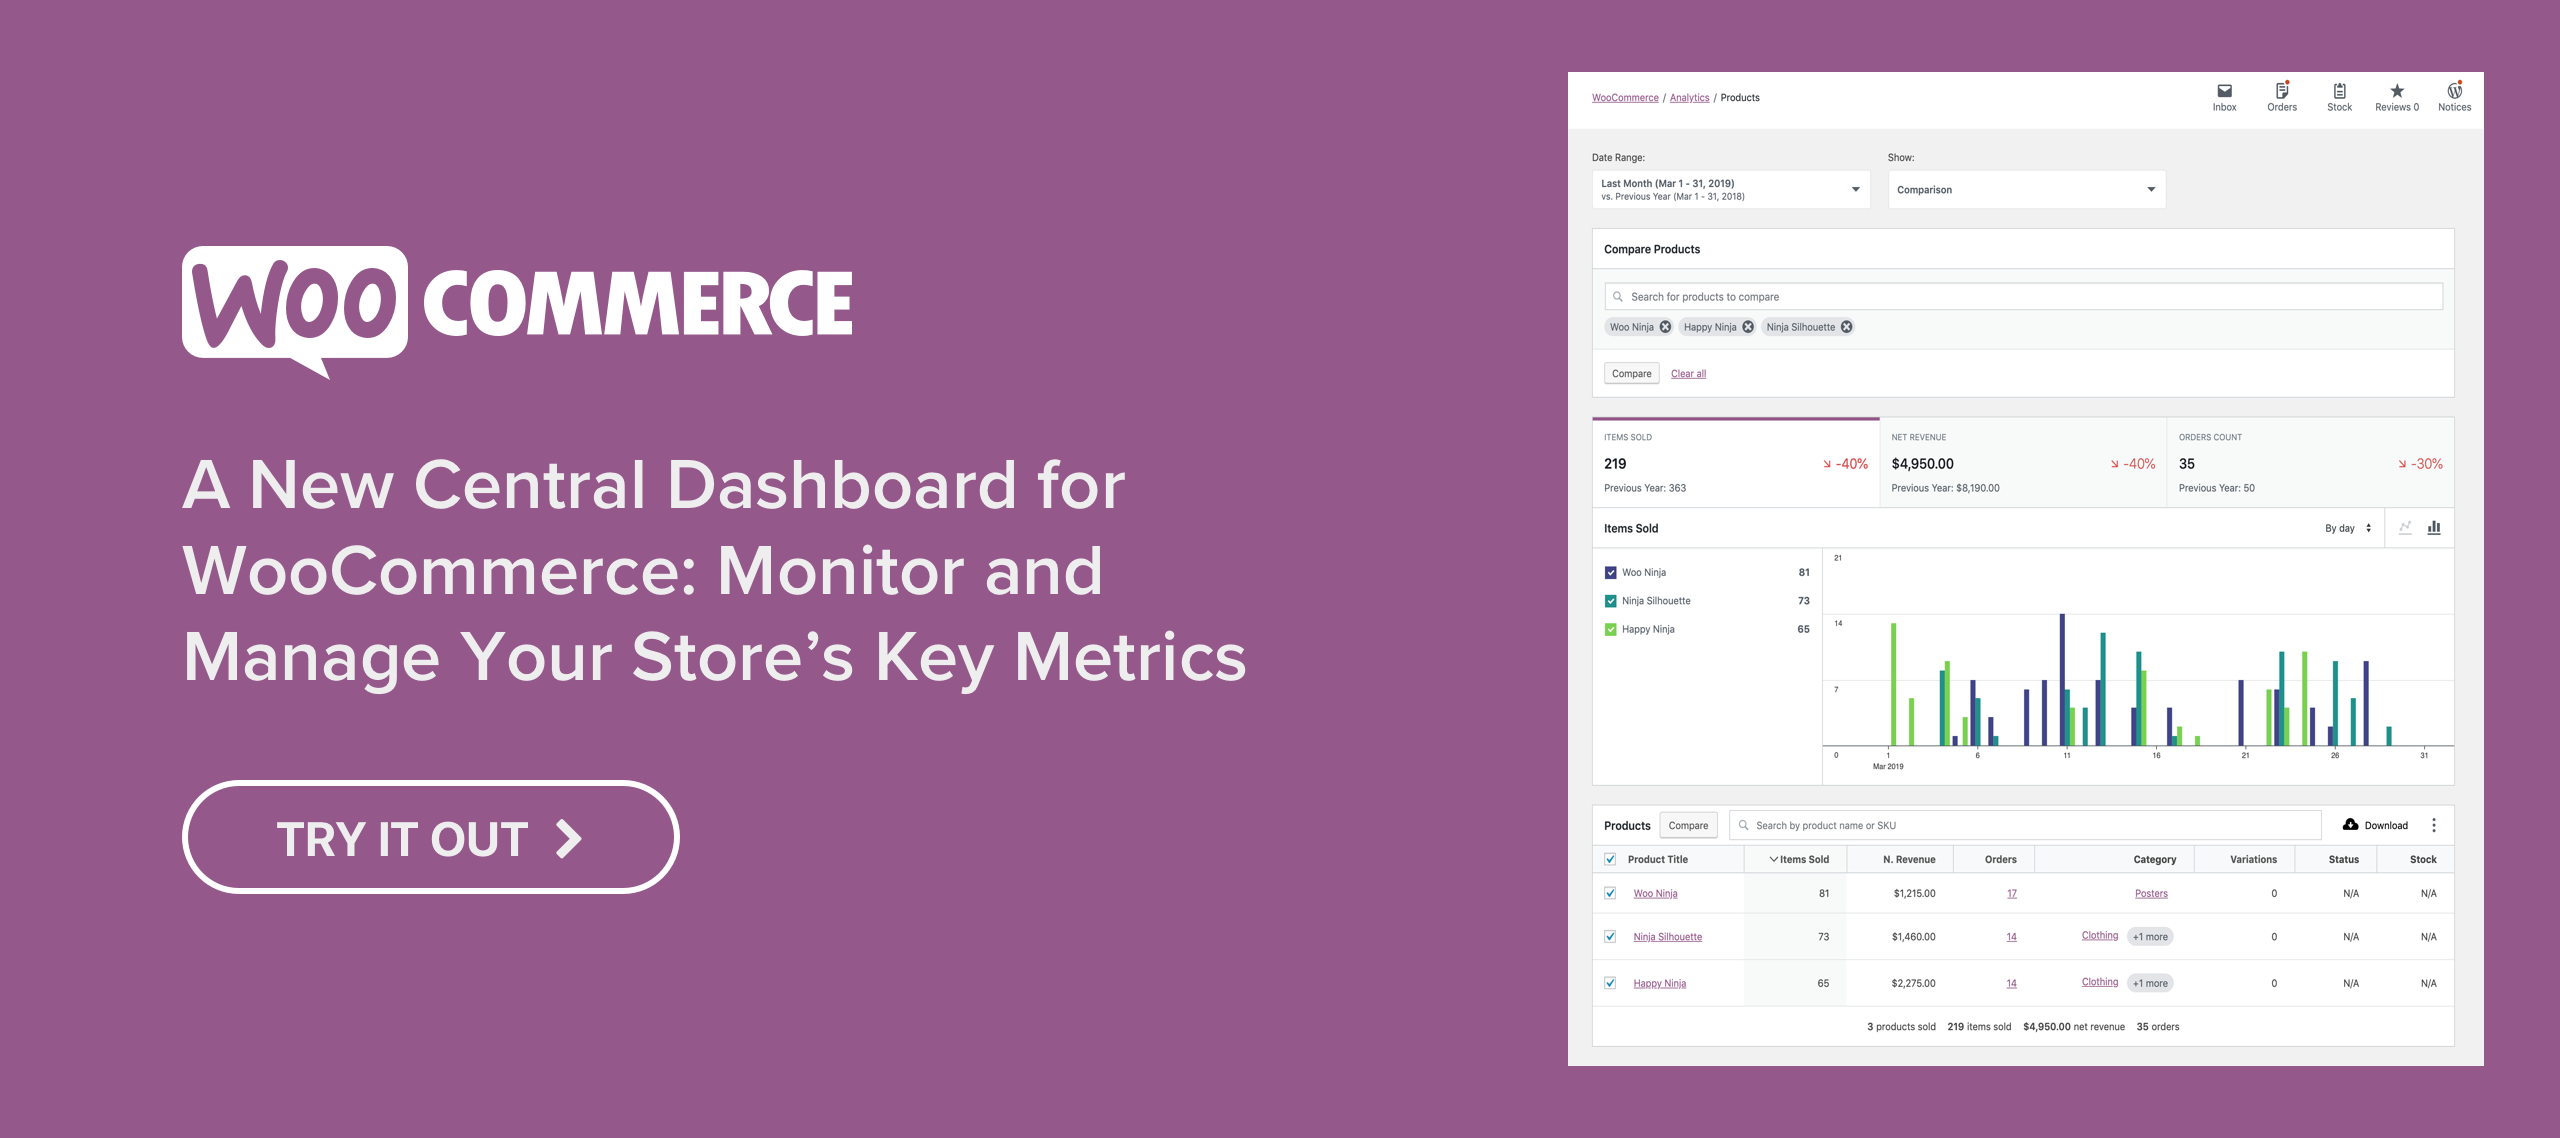 A new central dashboard for WooCommerce: Monitor and Manage your store's key metrics